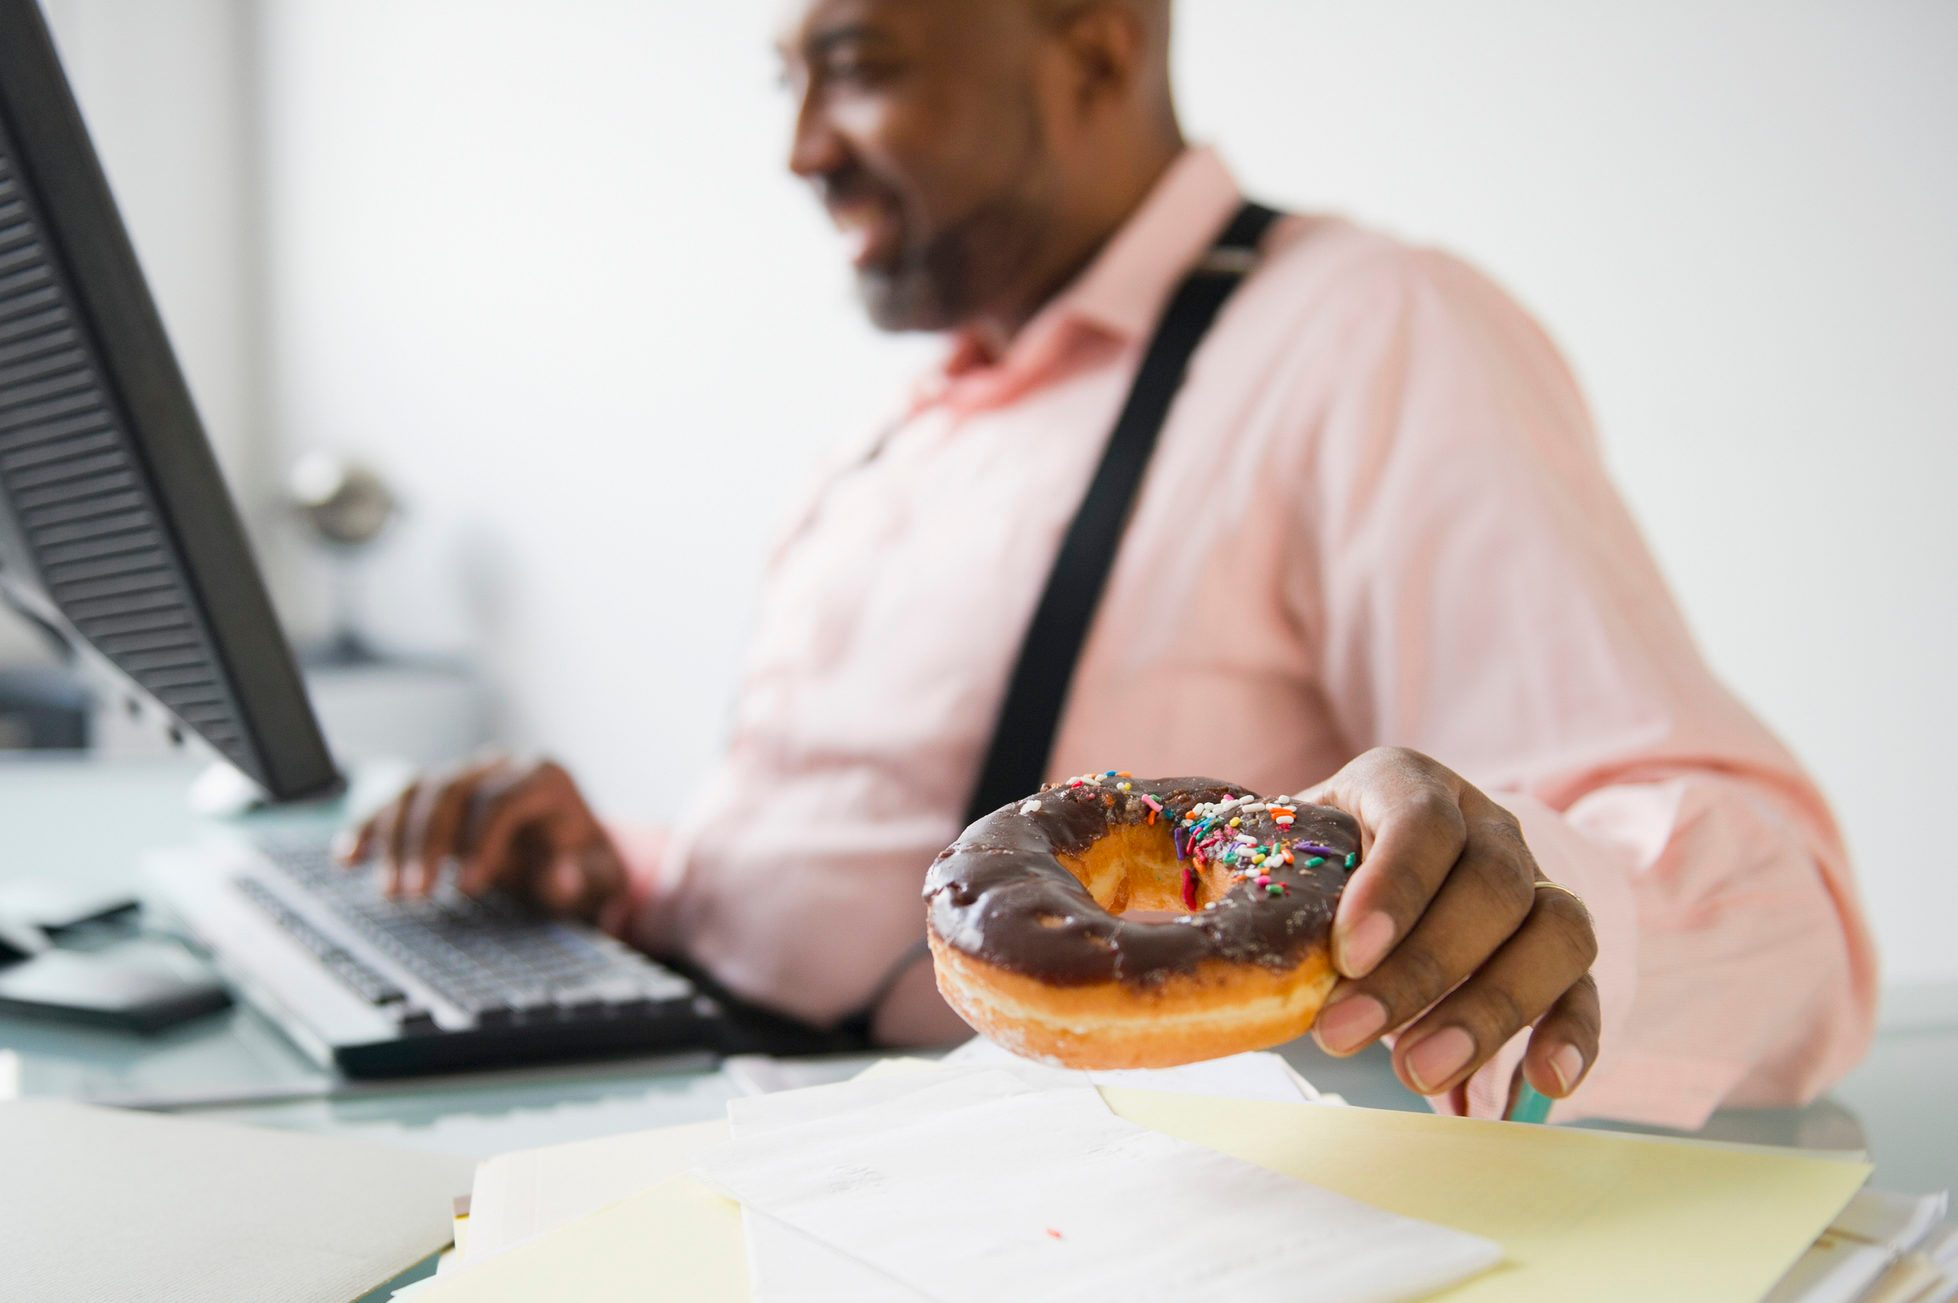 man eating a donut while sitting at desk working